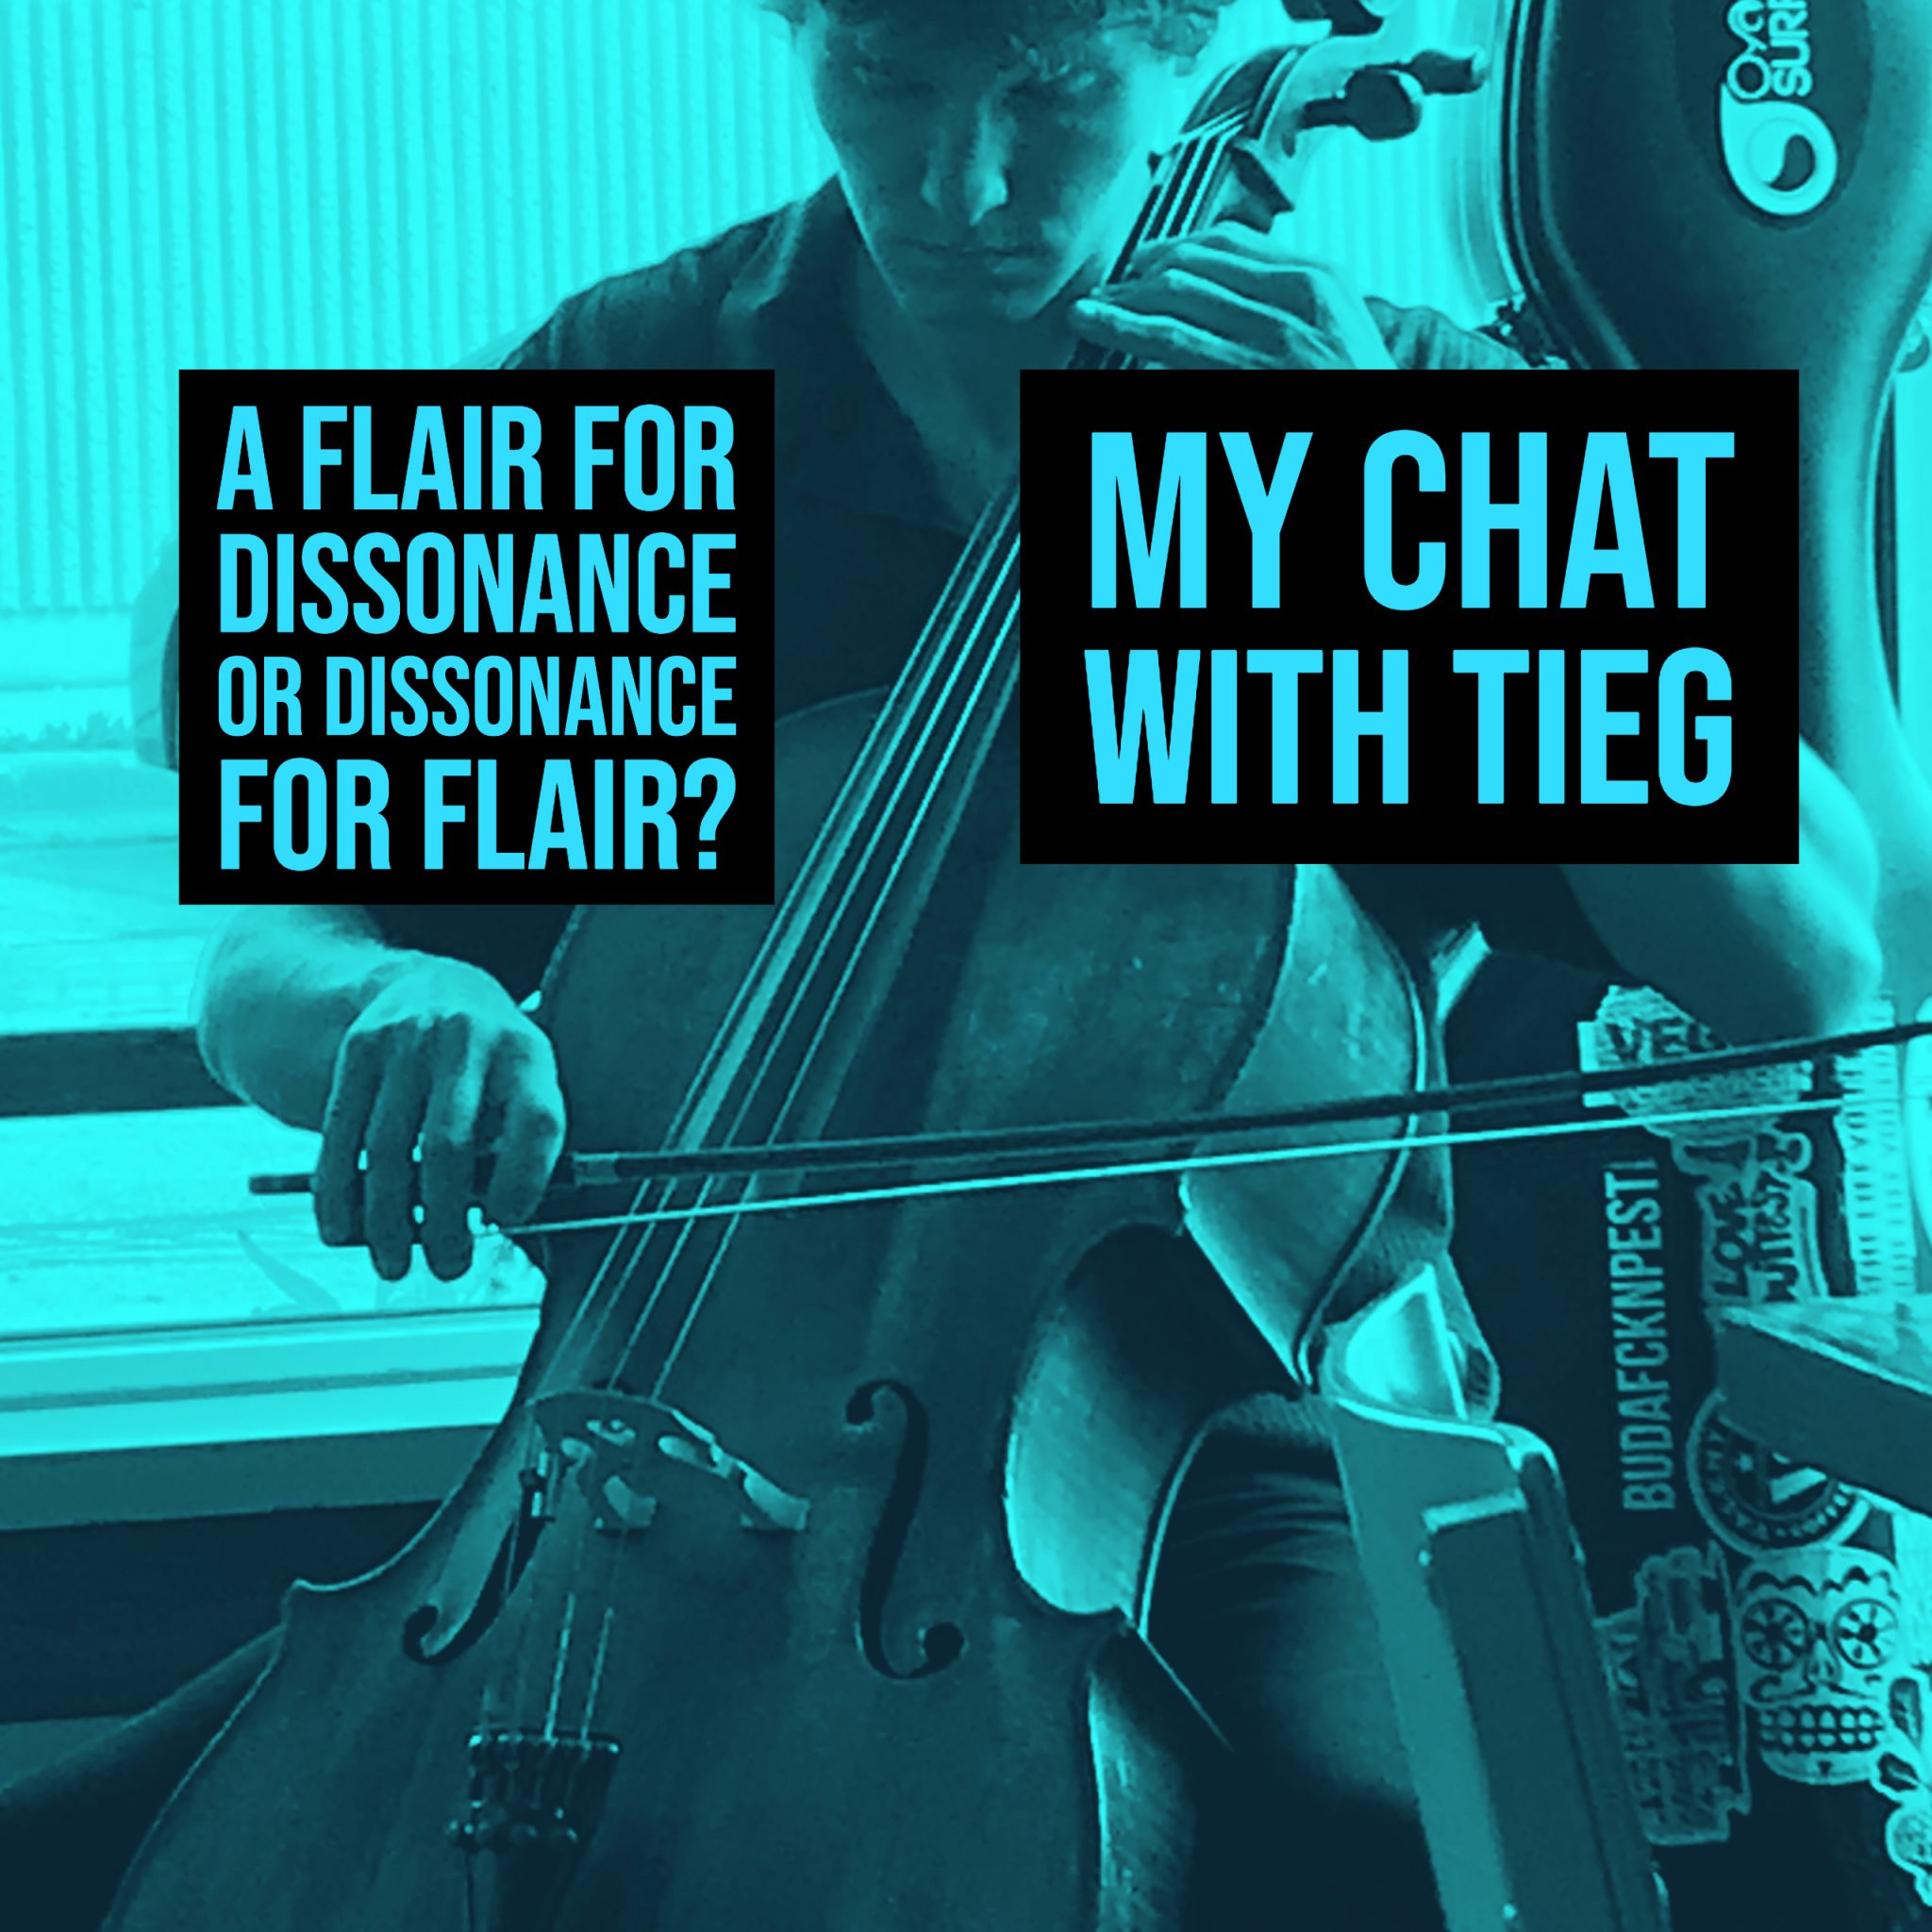 Tieg cello balance life coach